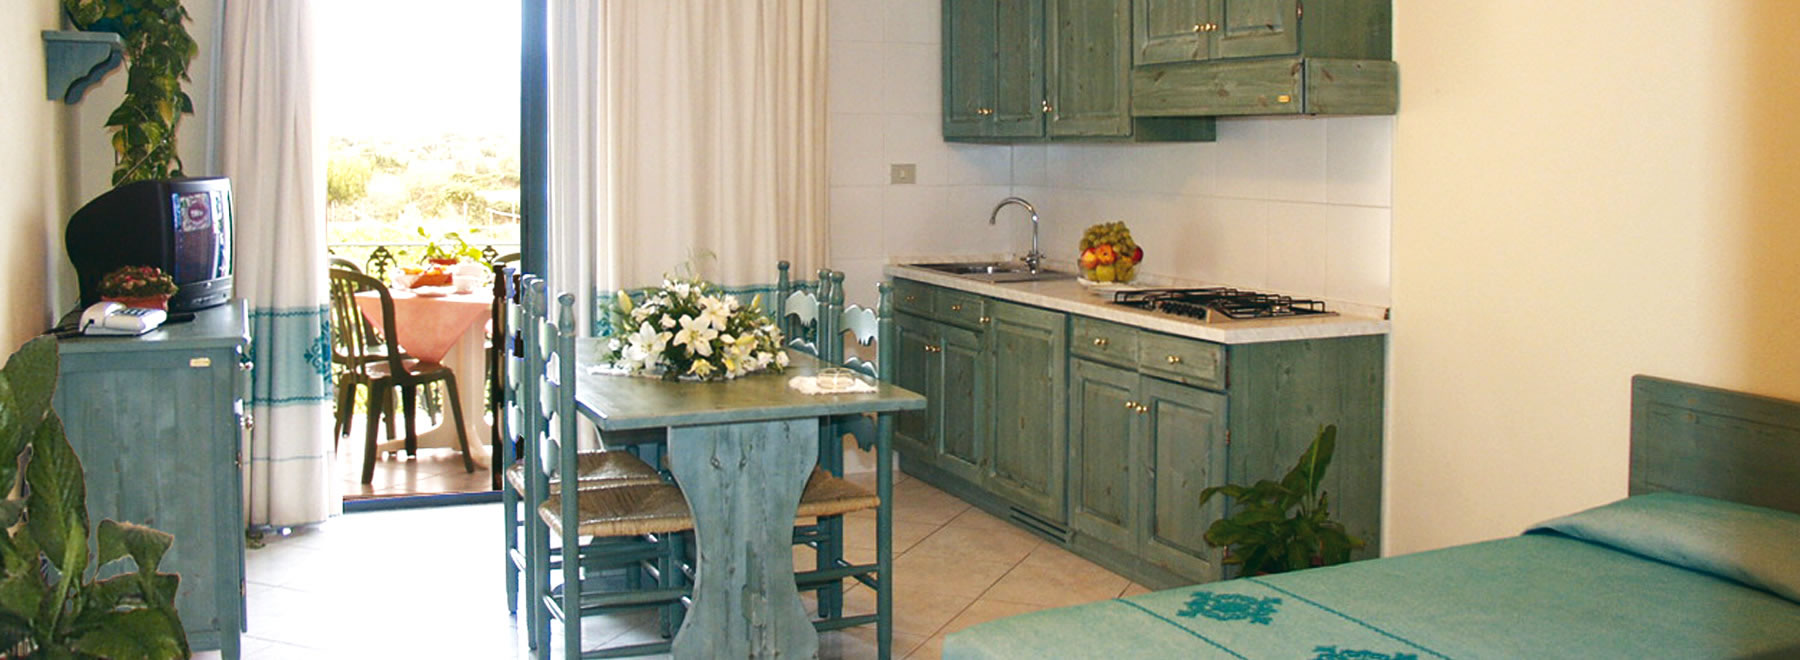 2-Room Apartment for 5 people Apartments  Sardegna - Italia